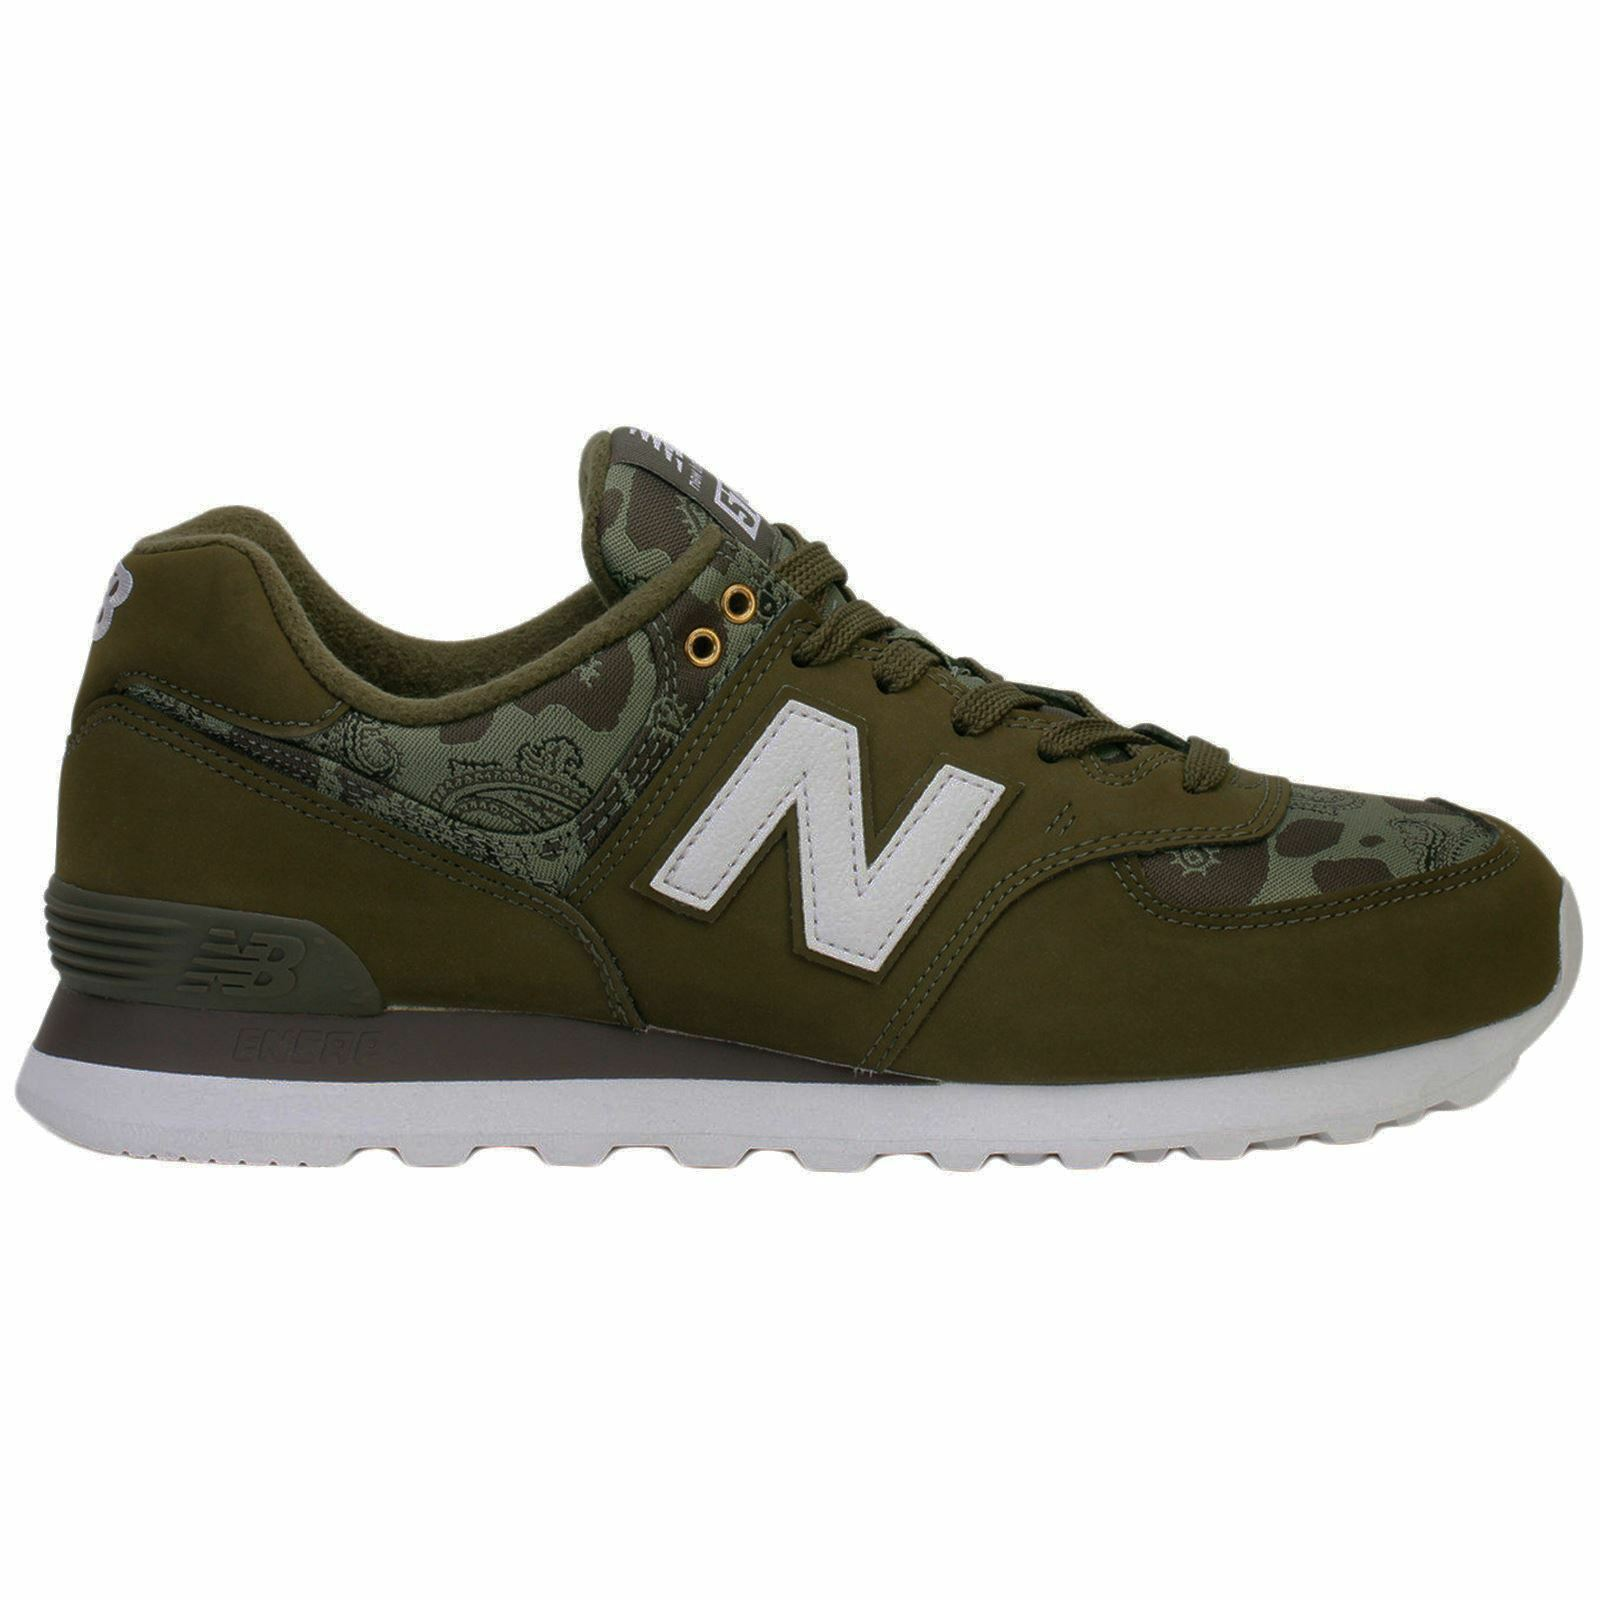 New Balance ML574 Nubuck Textile Classic Low-Top Running Sneakers Mens Trainers